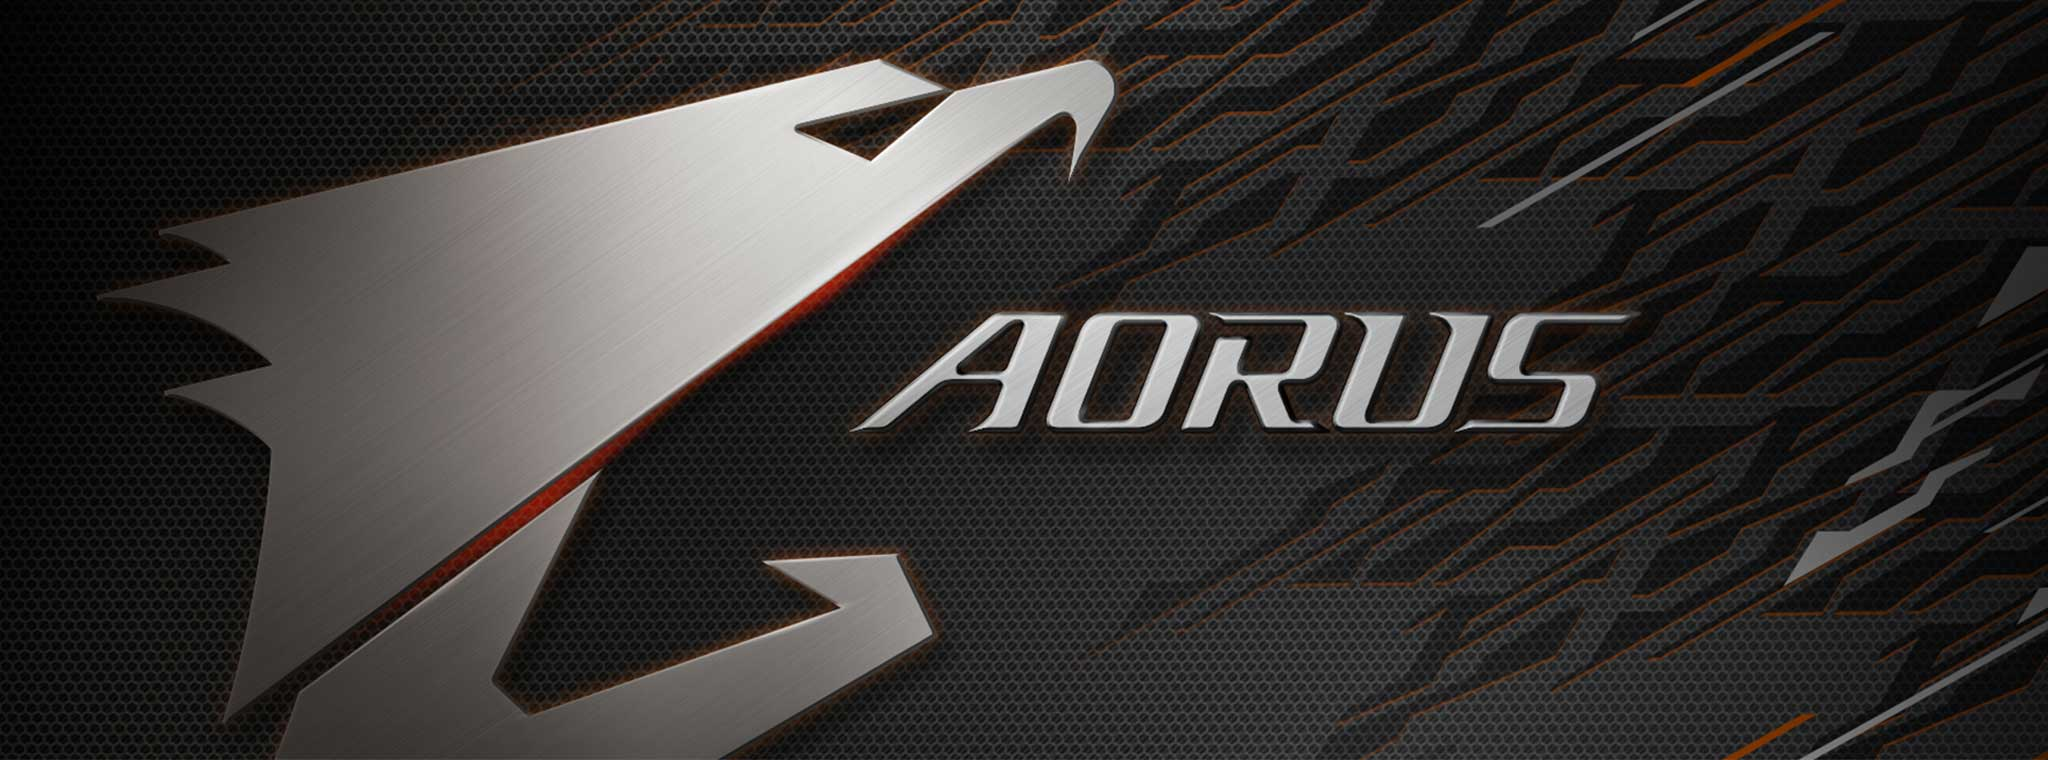 Gigabyte Announces X399 Motherboard Pre Orders